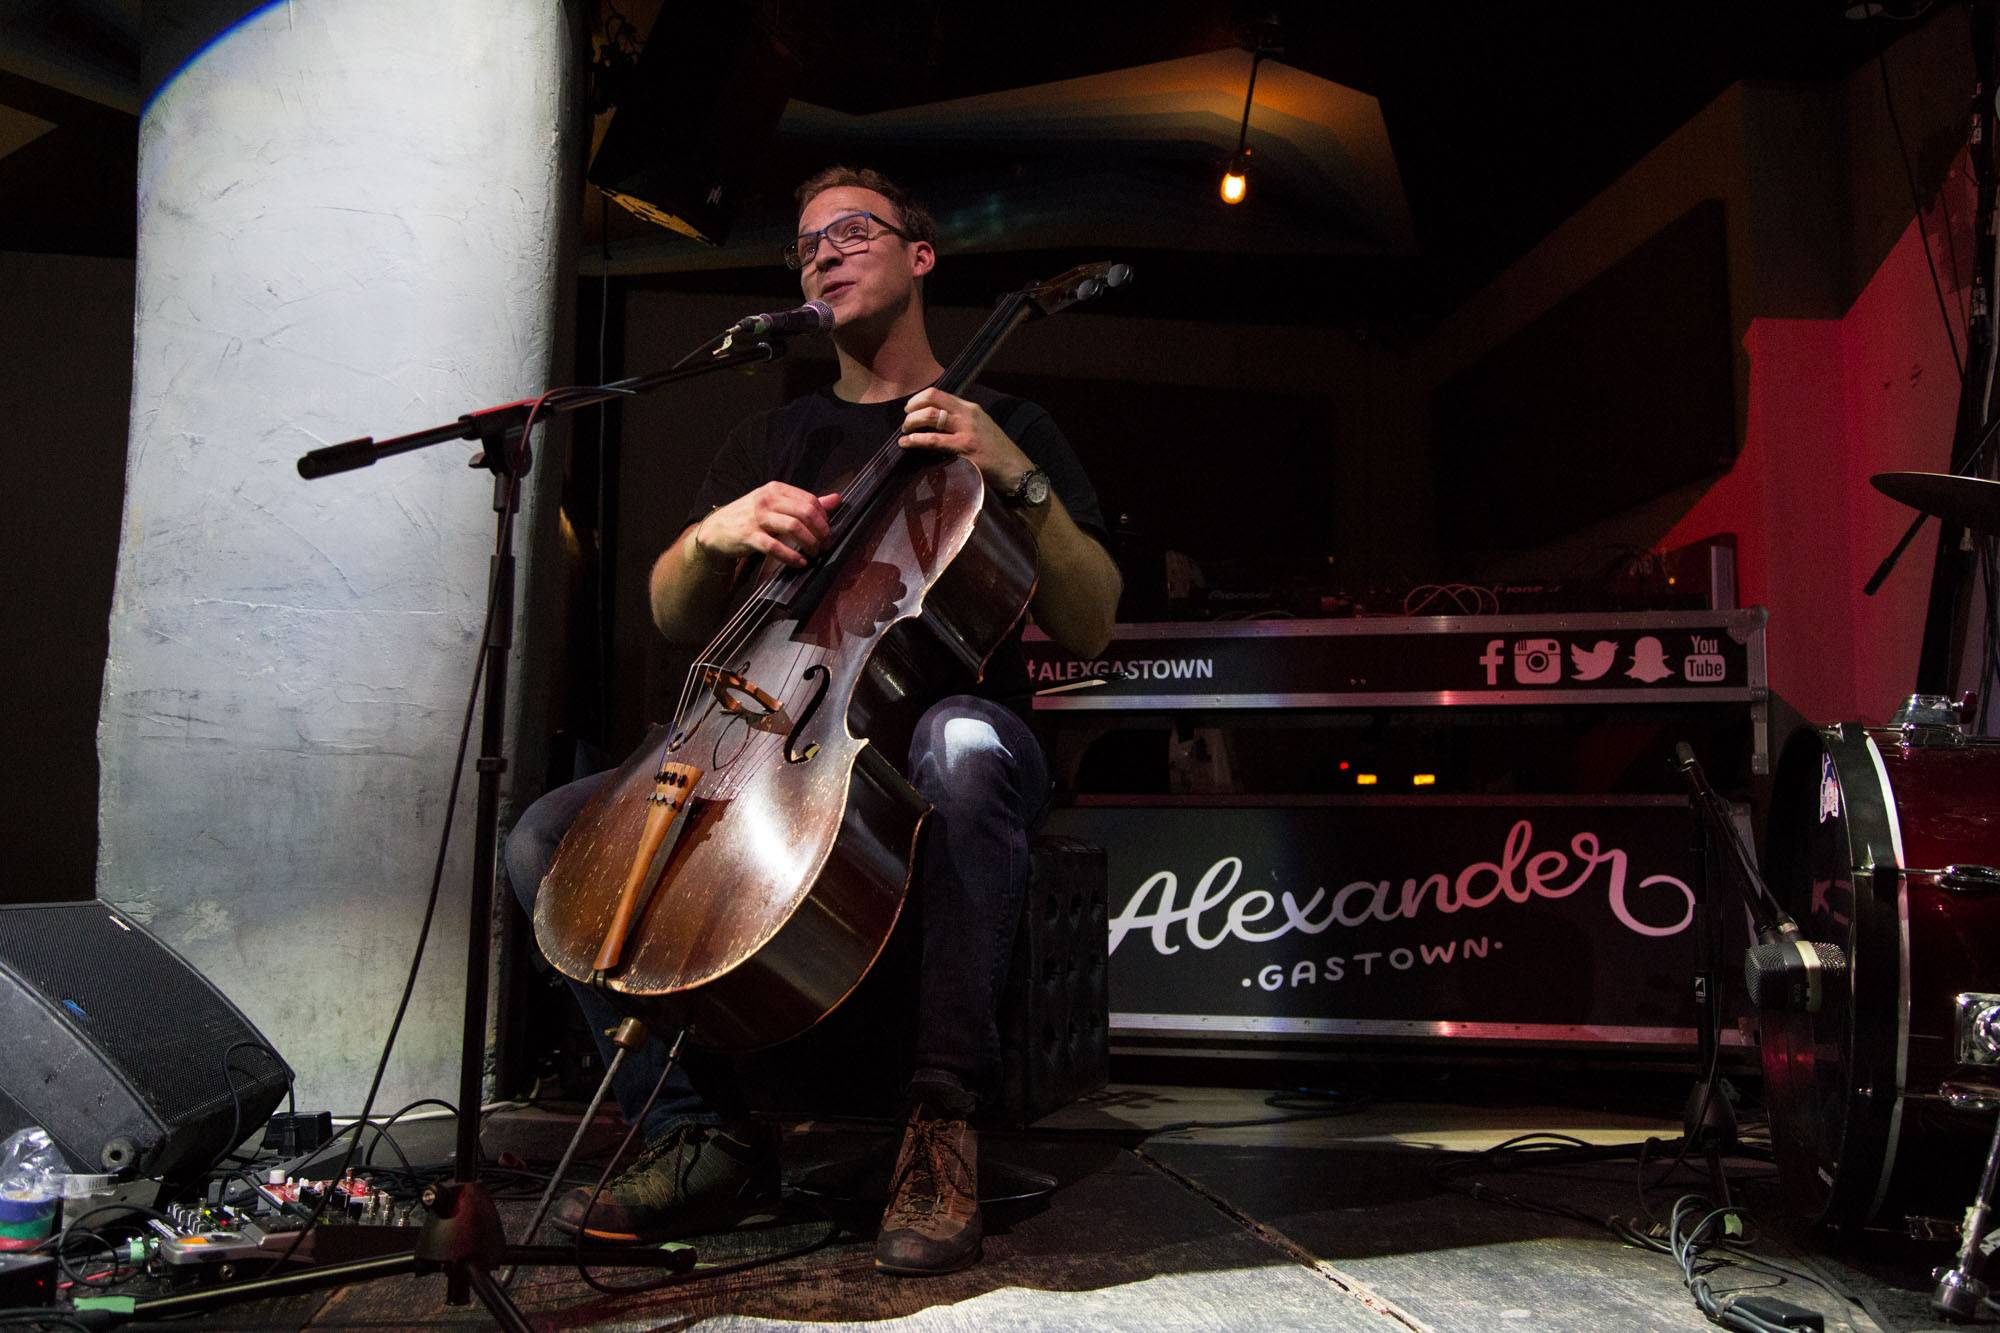 Ben Sollee at the Alexander, Vancouver, Aug. 18 2016. Kirk Chantraine photo.